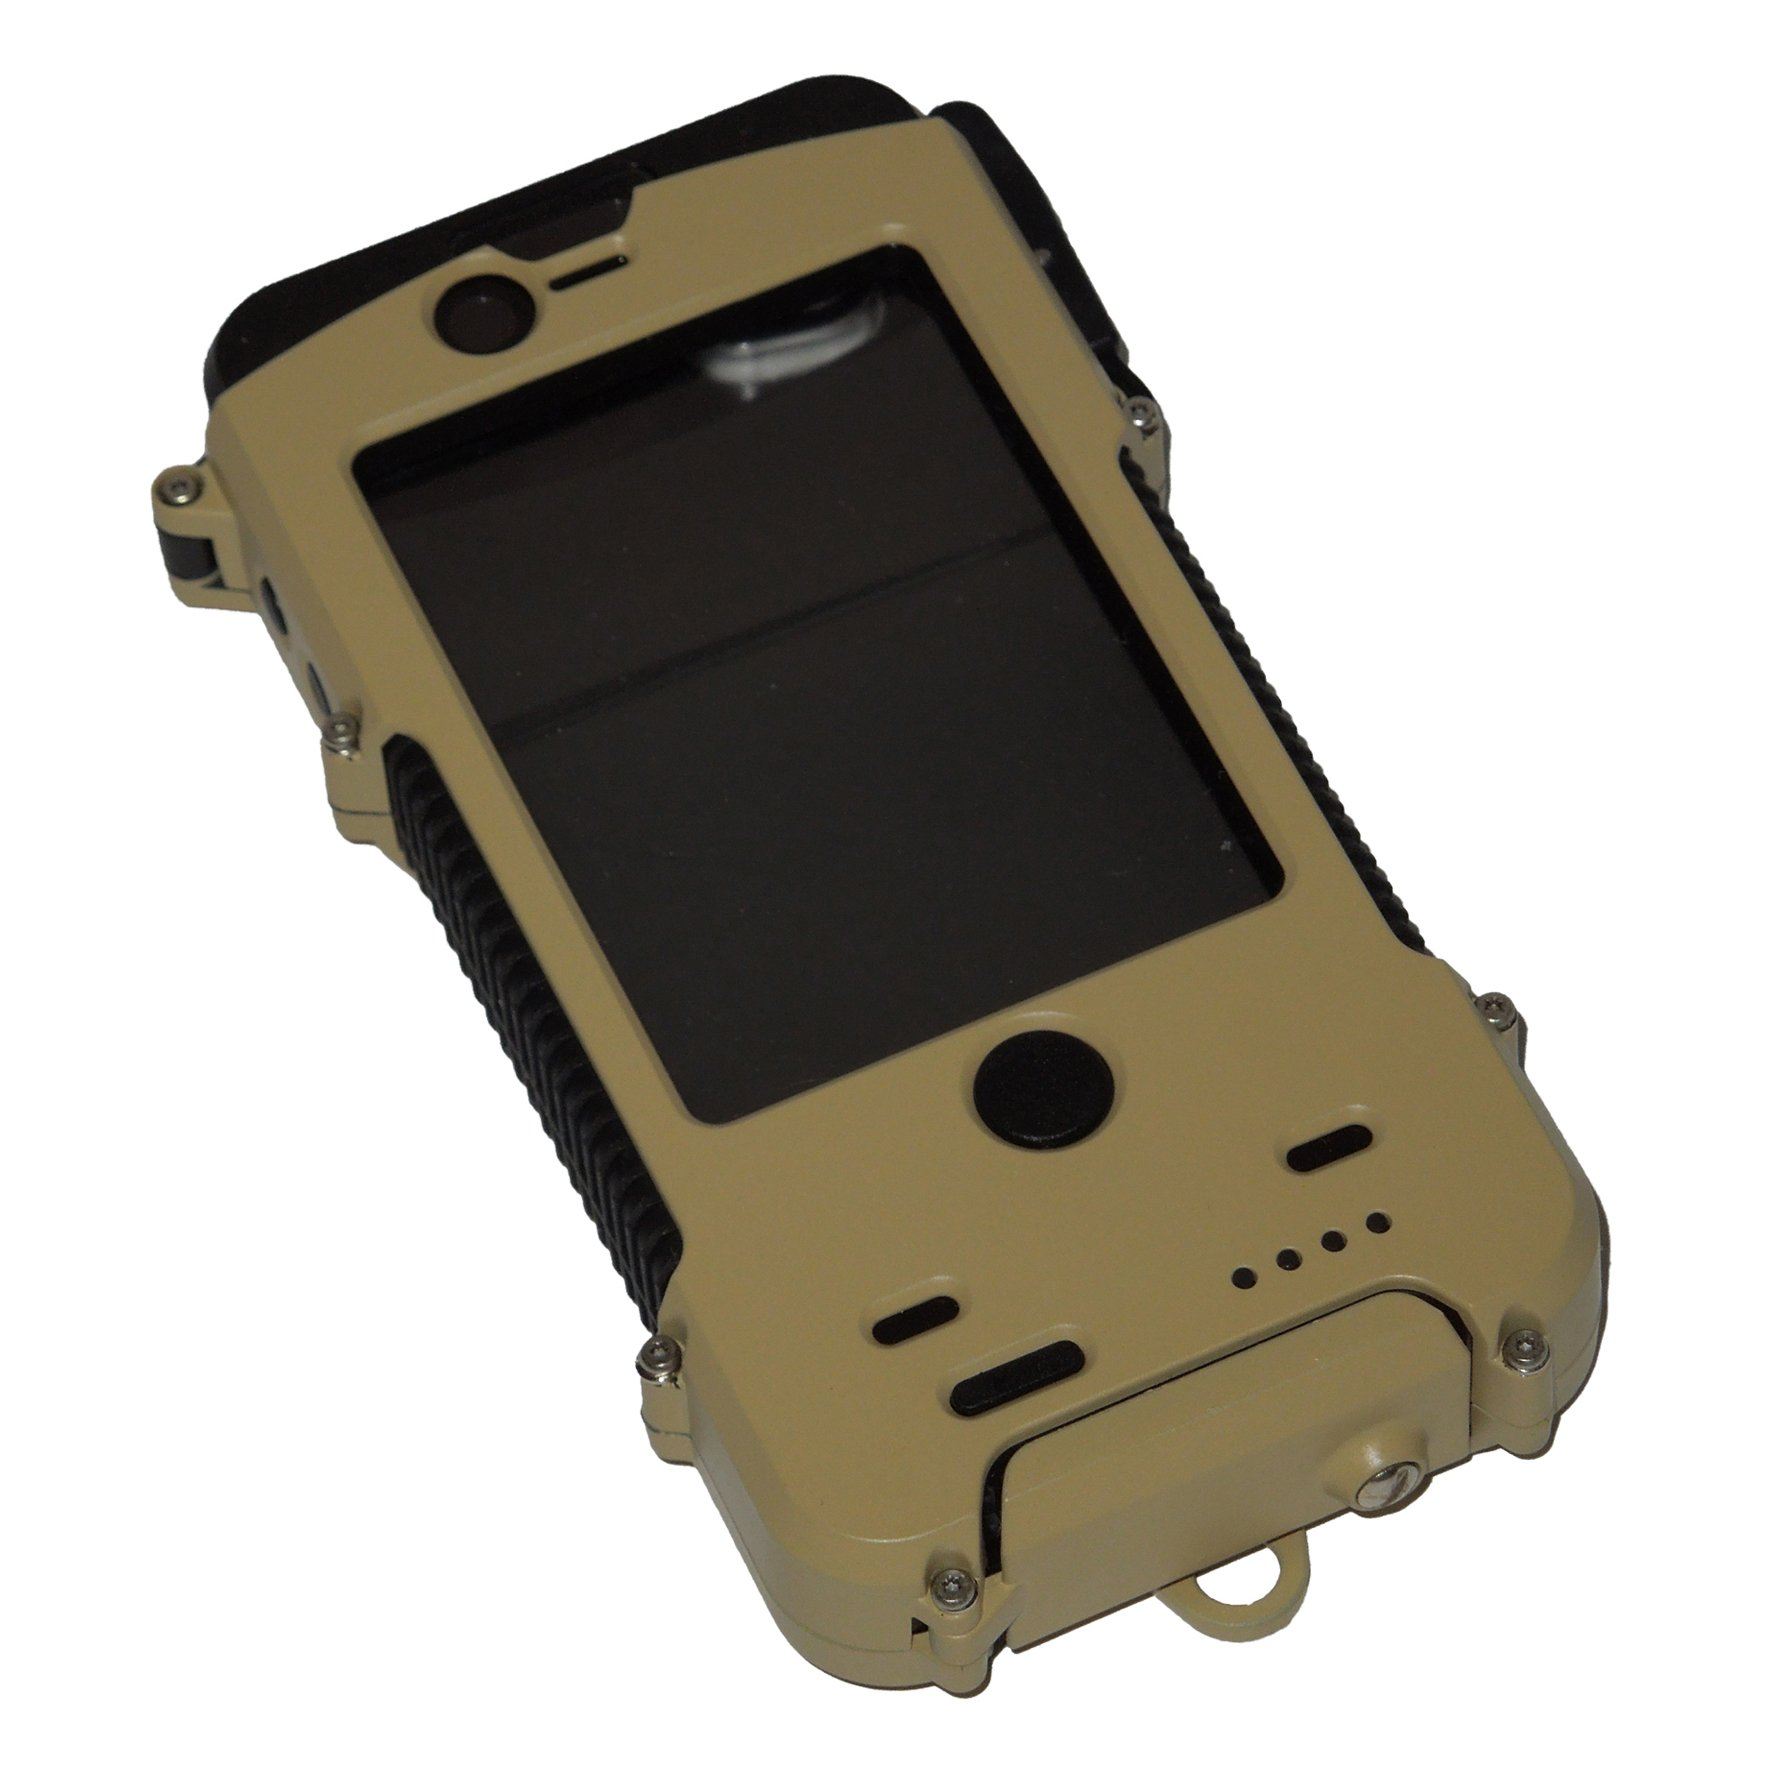 Snow Lizard SLXtreme Case for iPhone 4 and 4S, Coyote Tan